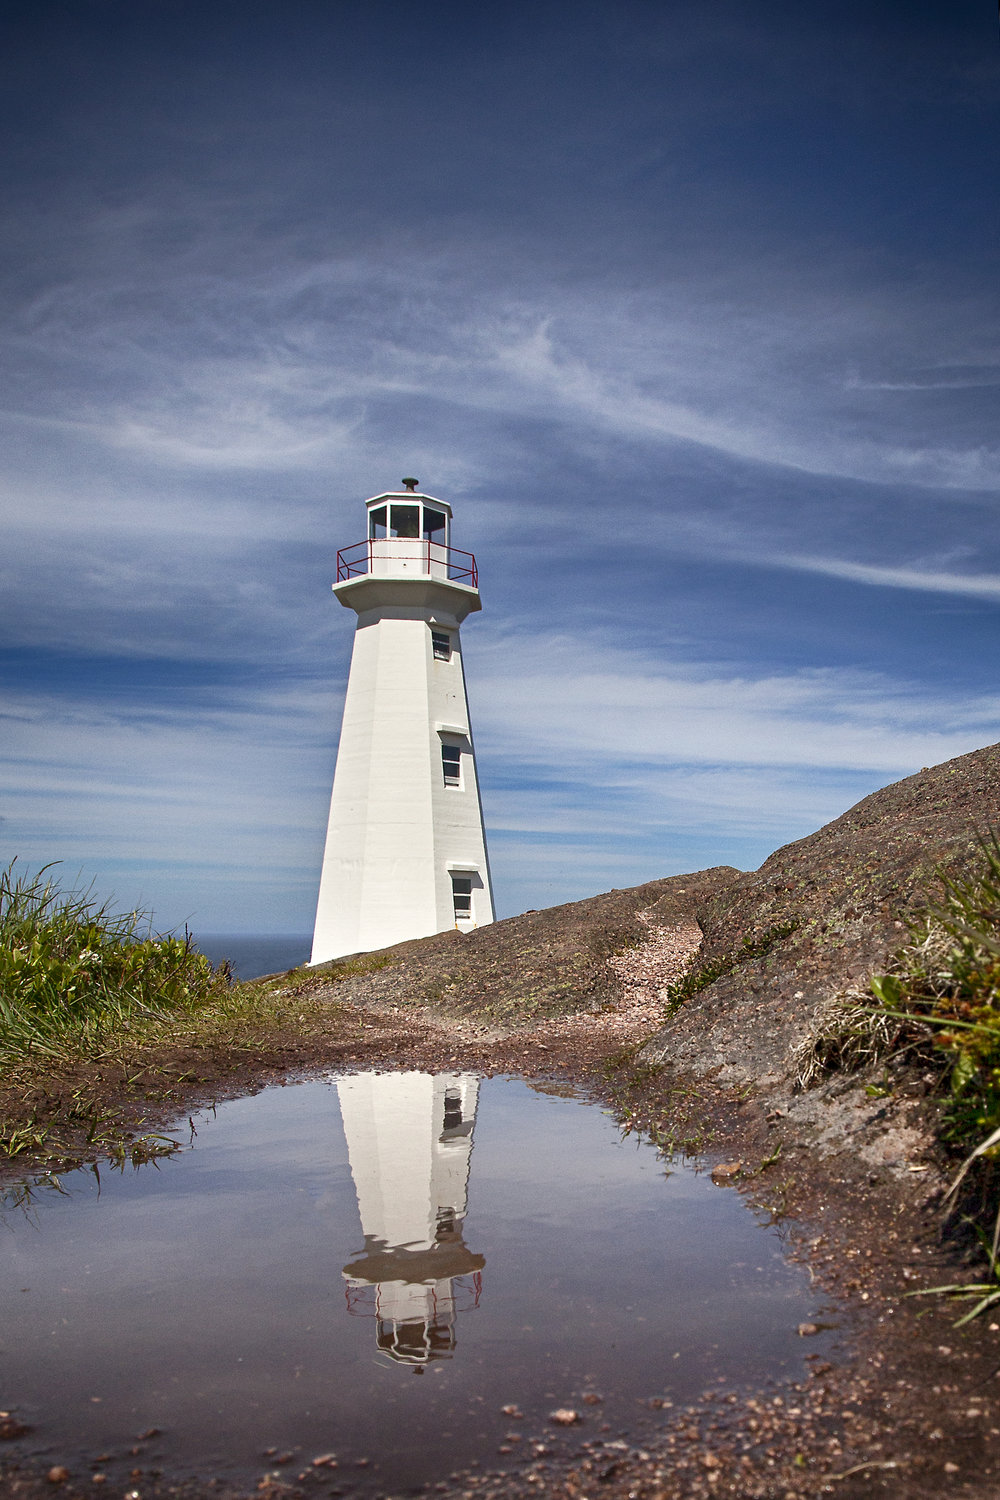 Cape Spear Lighthouse - Across the Blue Planet